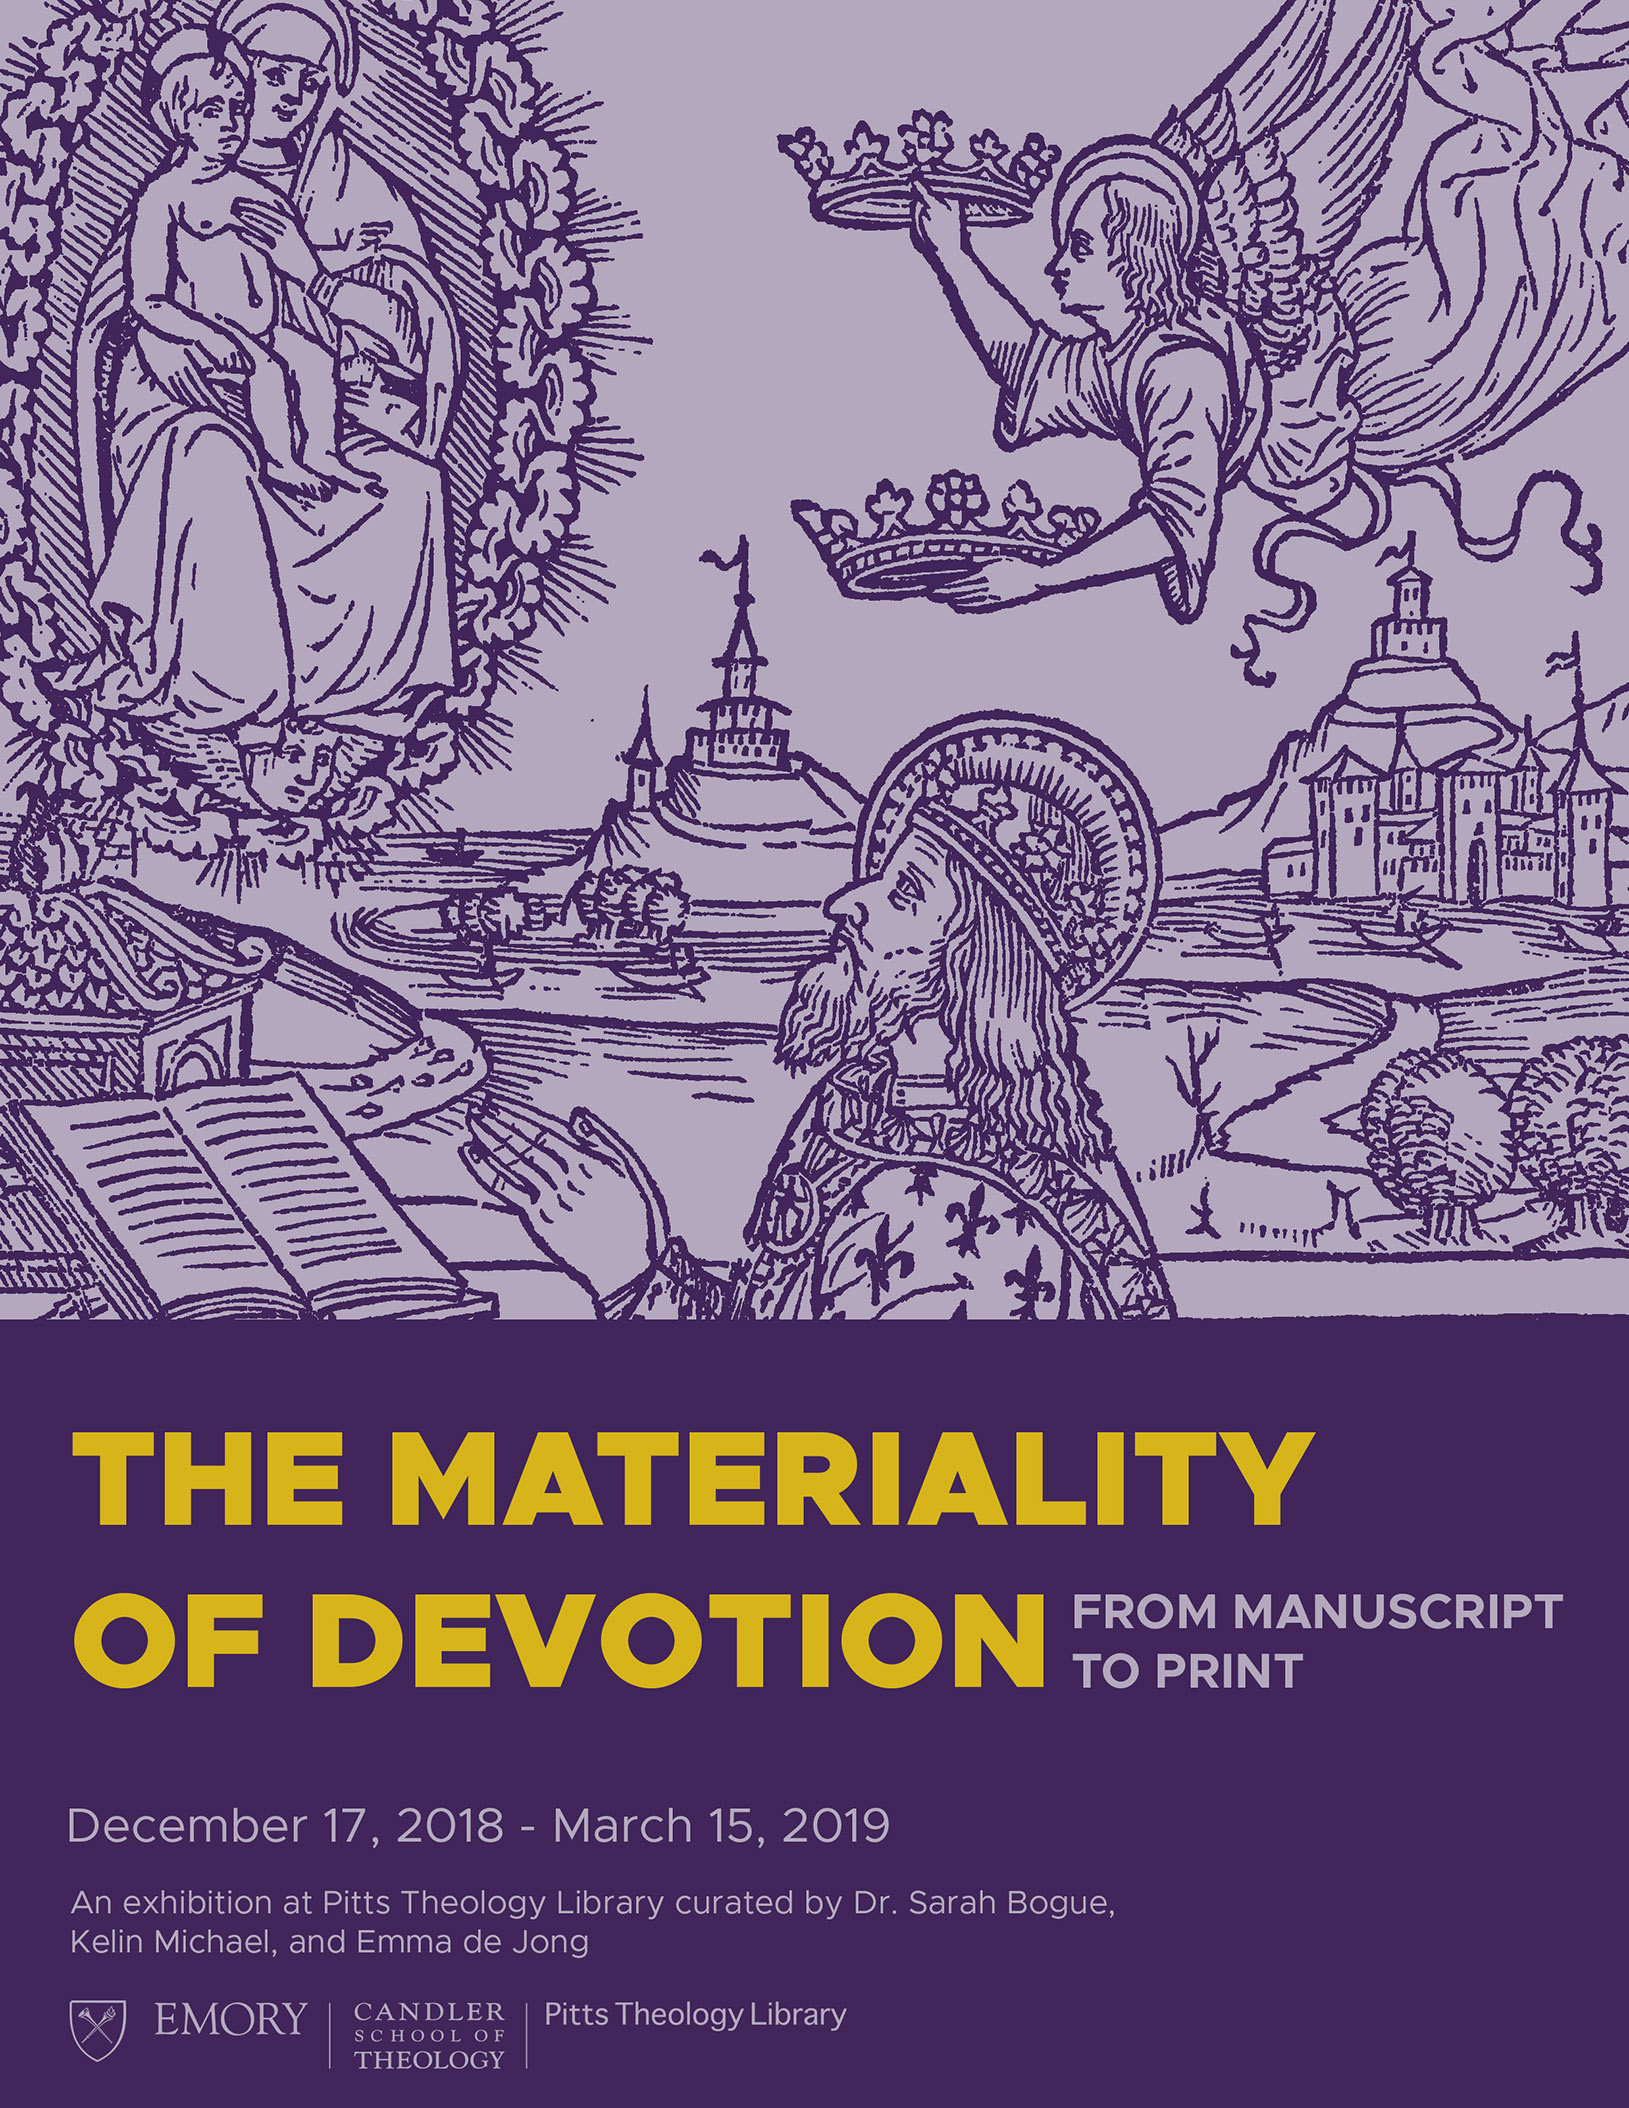 The Materiality of Devotion Poster